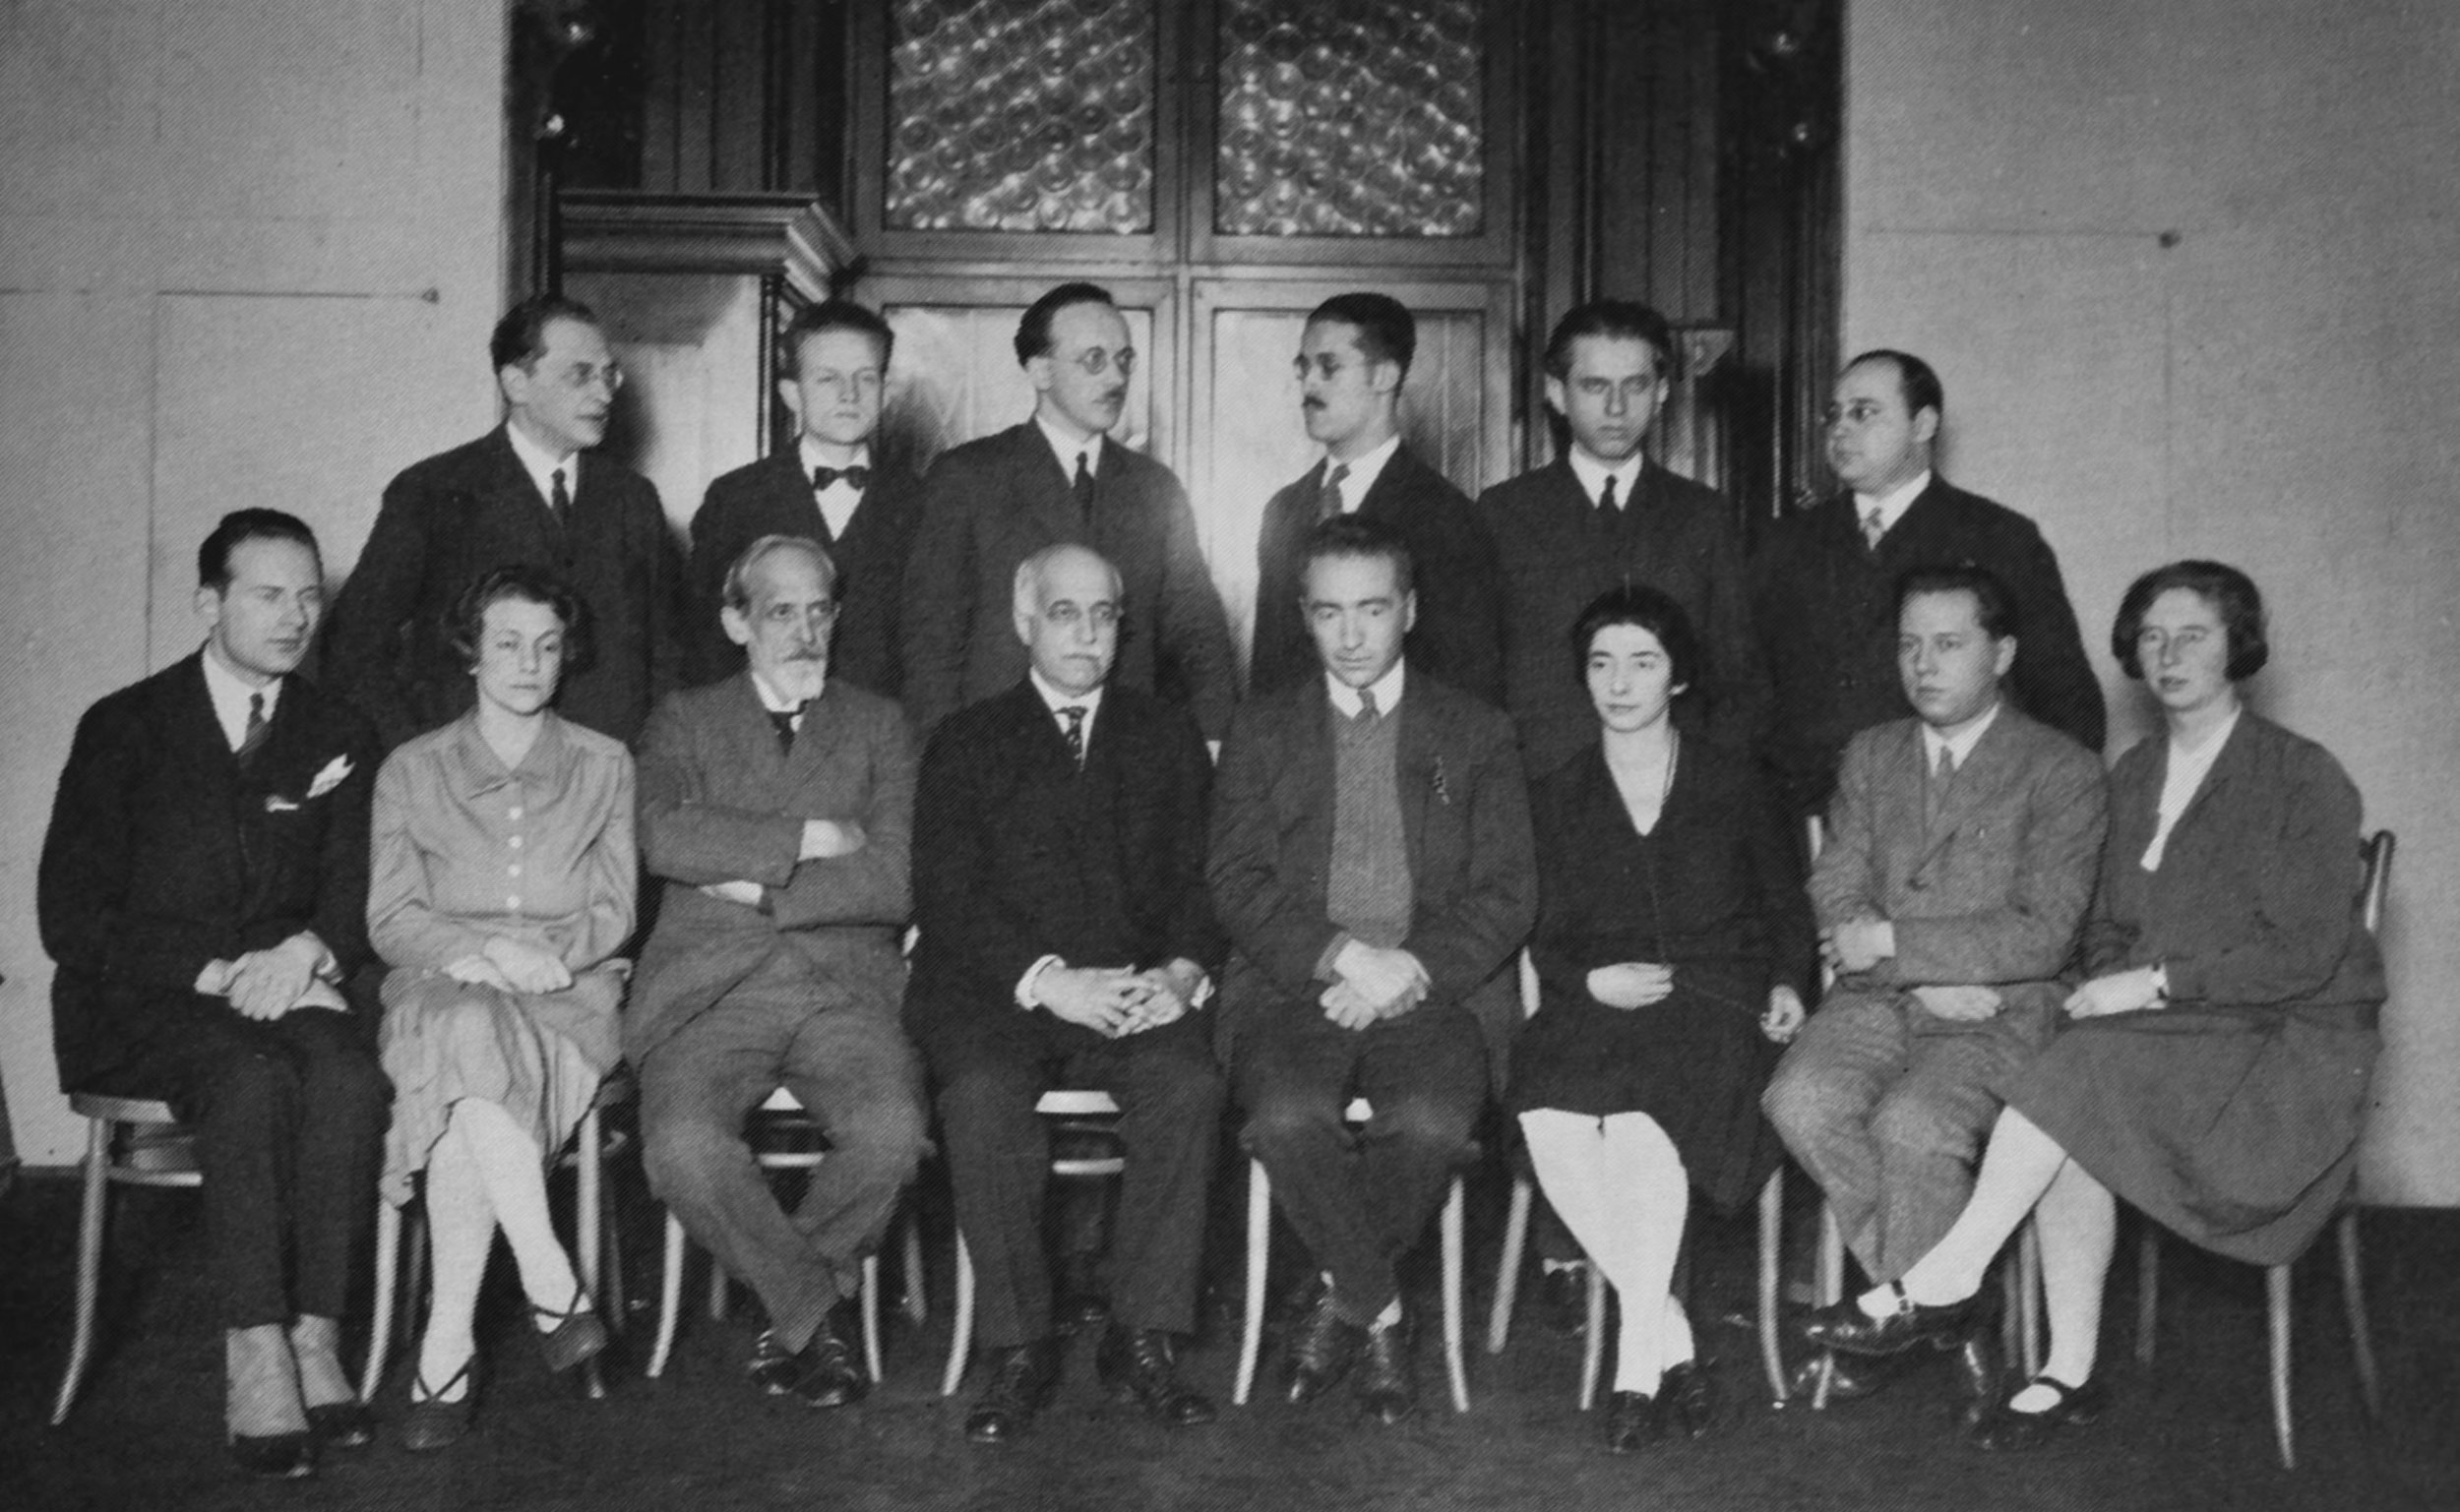 Members of the Psychoanalytic Polyclinic in Vienna (1922)